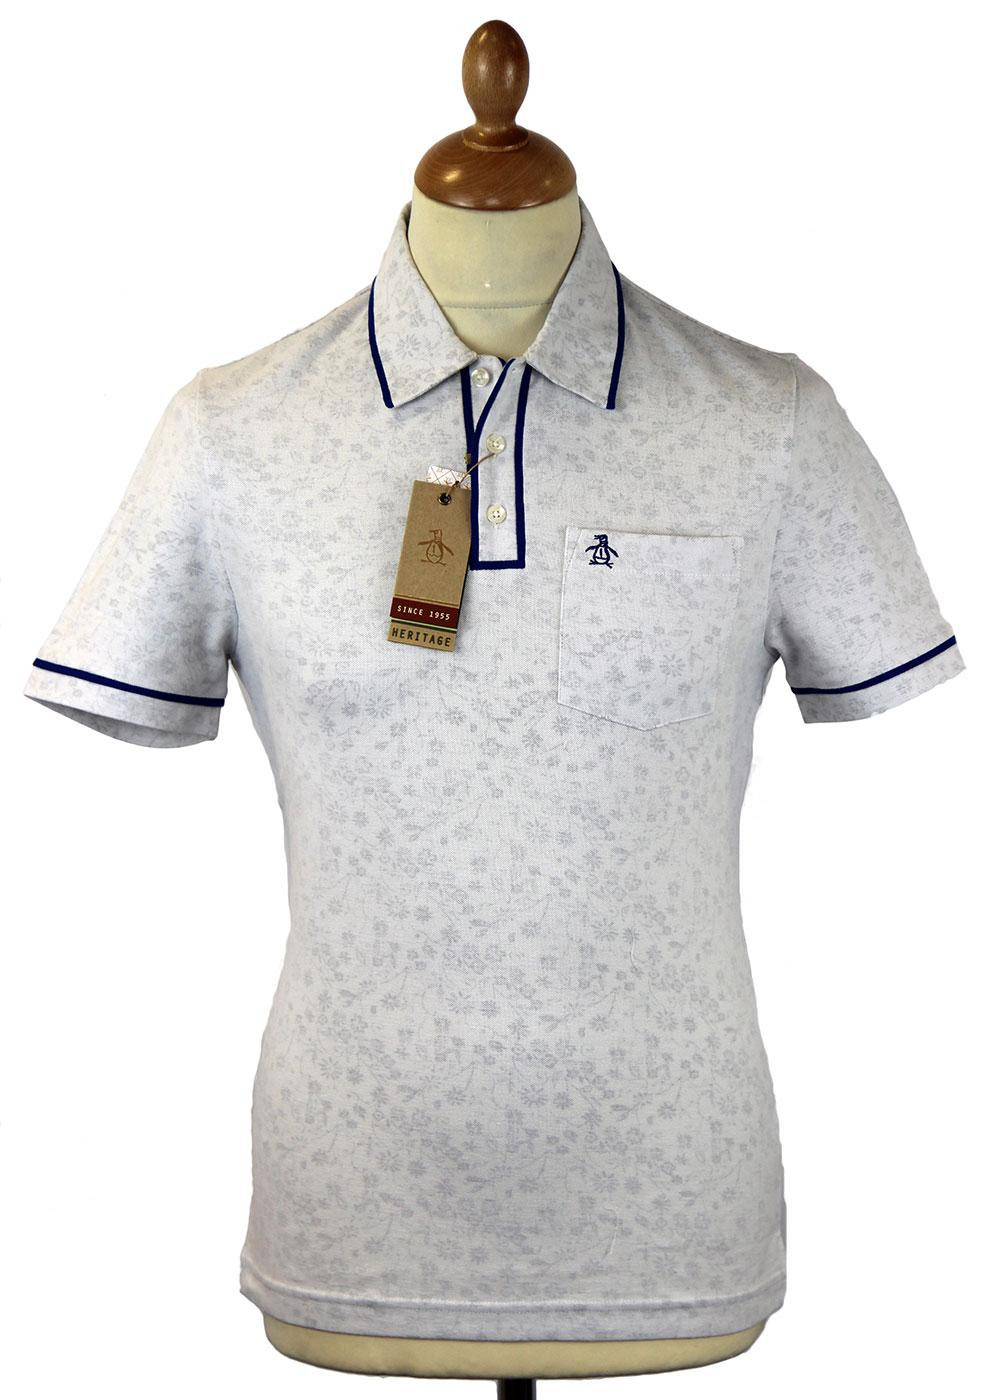 Floral Earl ORIGINAL PENGUIN Retro Mod Polo Top DB